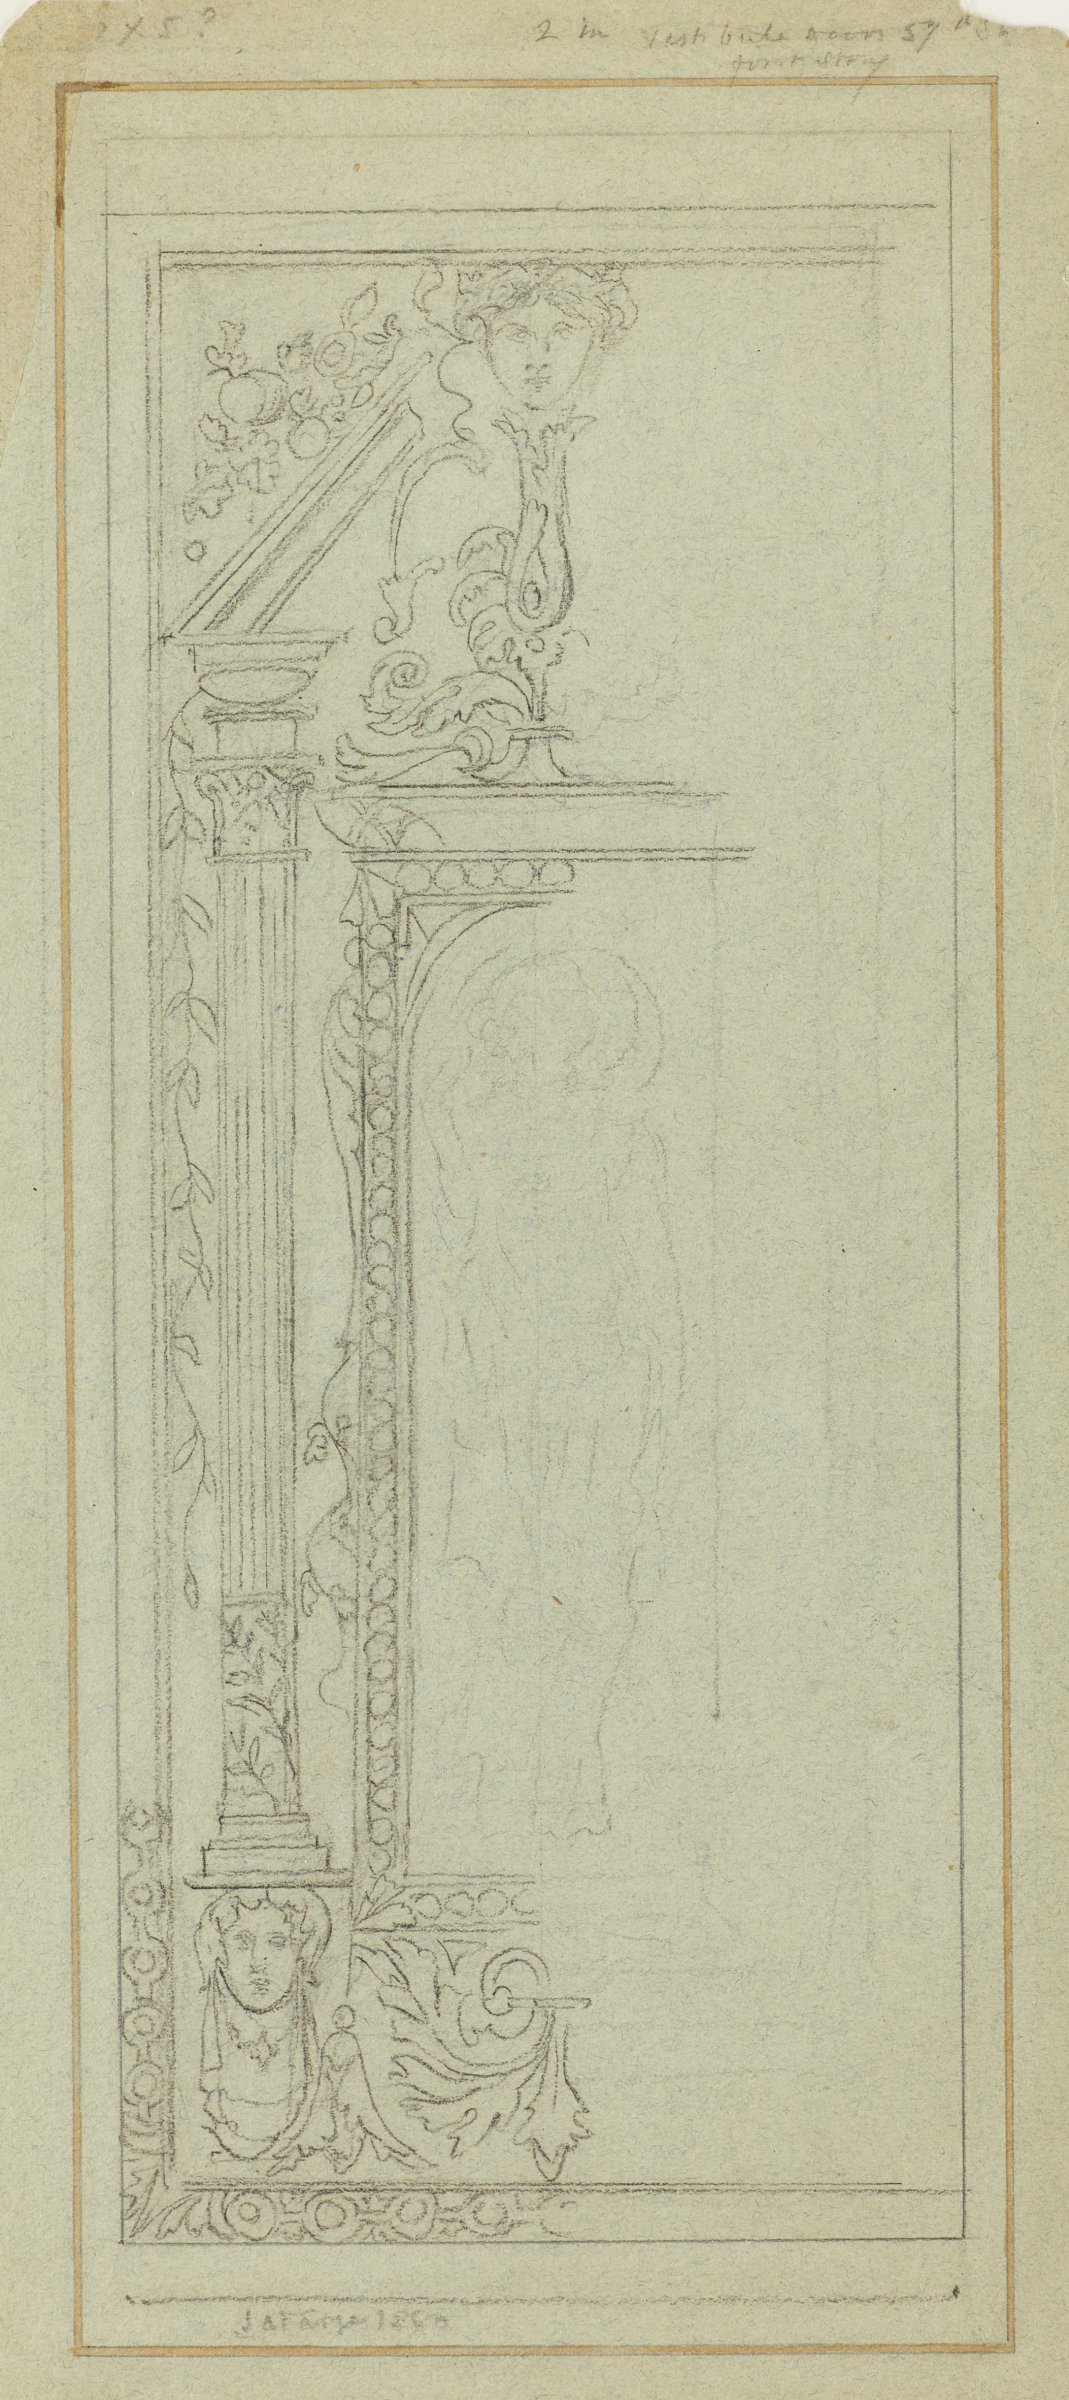 Along with companion work, studies for stained glass windows set in doors.  The first panel [AFI293.2010] is embellished with a female figure, classical busts, and floral motifs, flanked by Corinthian columns; the second panel [AFI293.2010] is decorated with a classical fountain, shield, and winged head, perhaps the god Mercury.